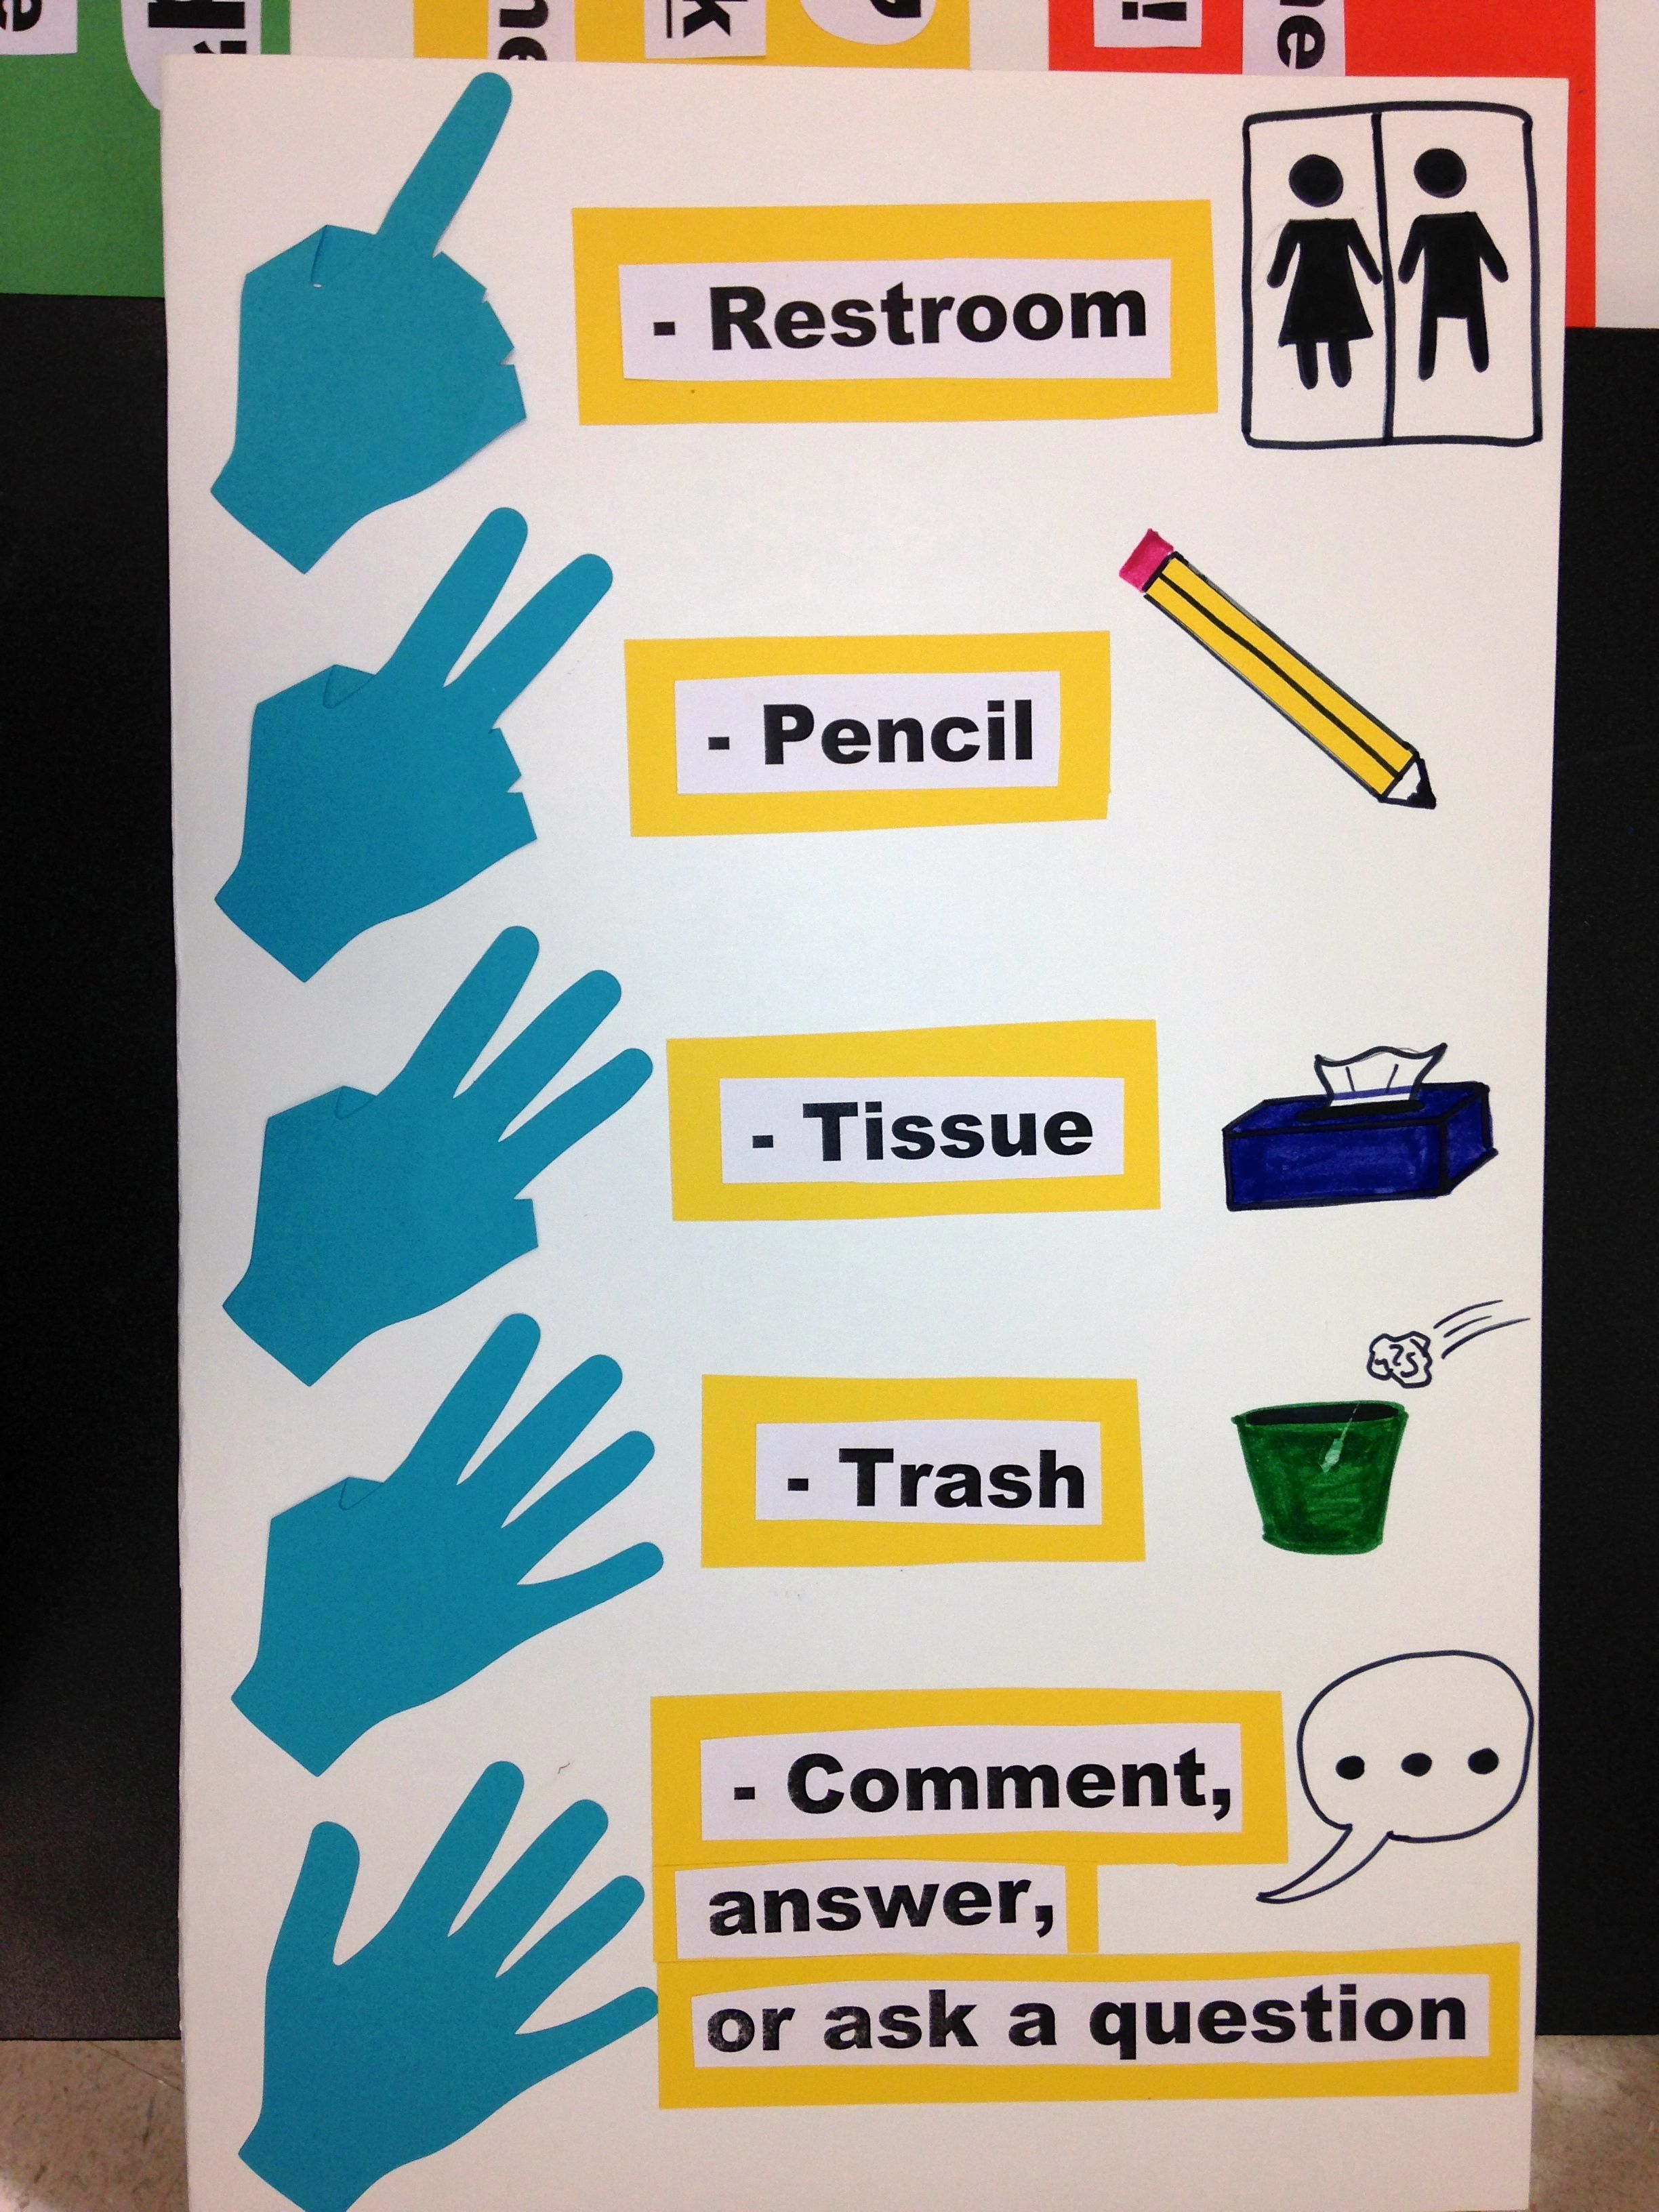 Hand signals for the classroom. Students can hold up a